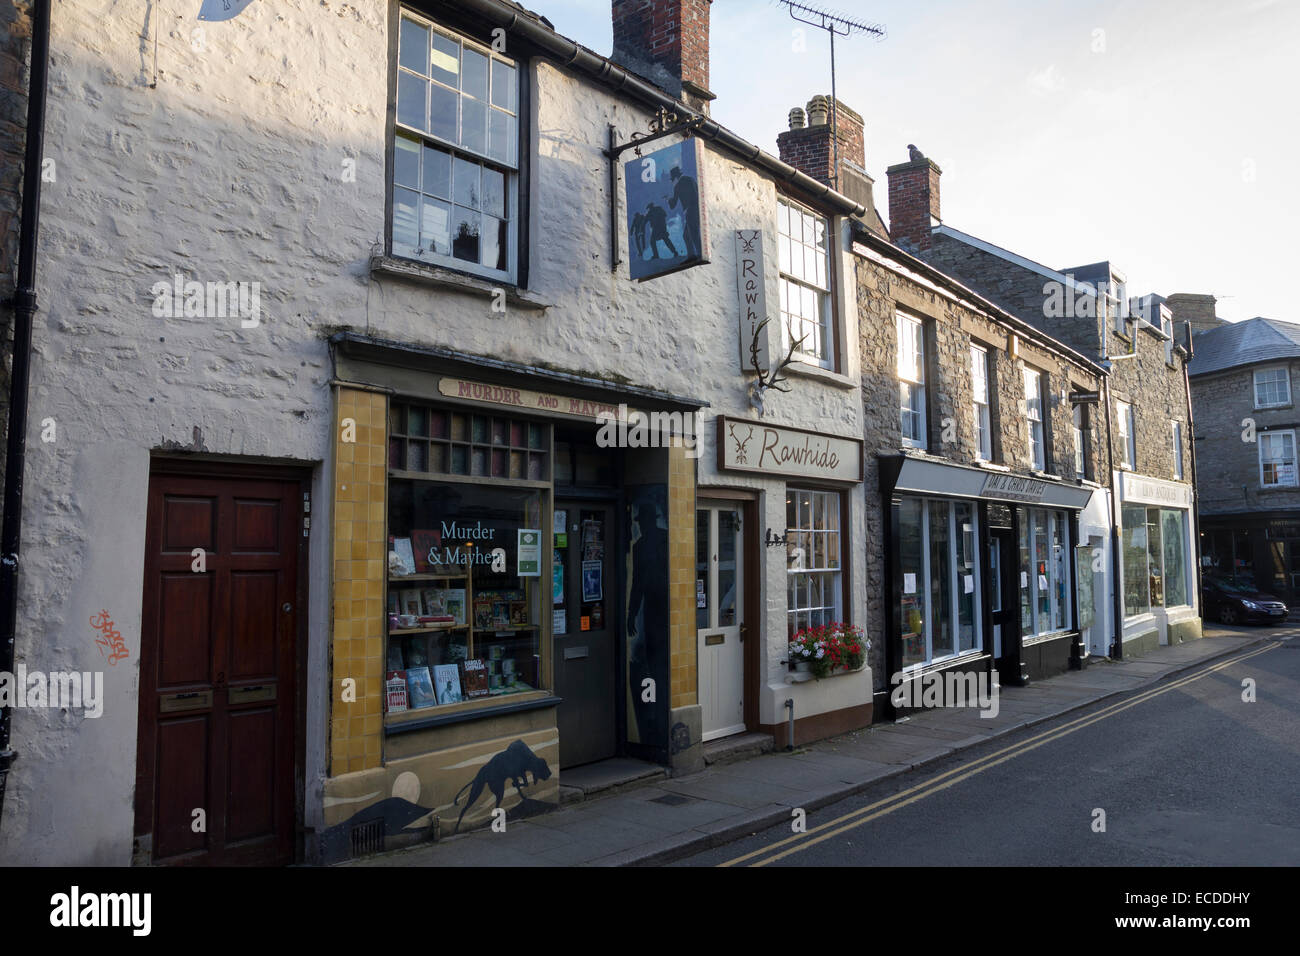 Shops in the famous literary town of Hay-on-Wye in Powys, Wales - Stock Image